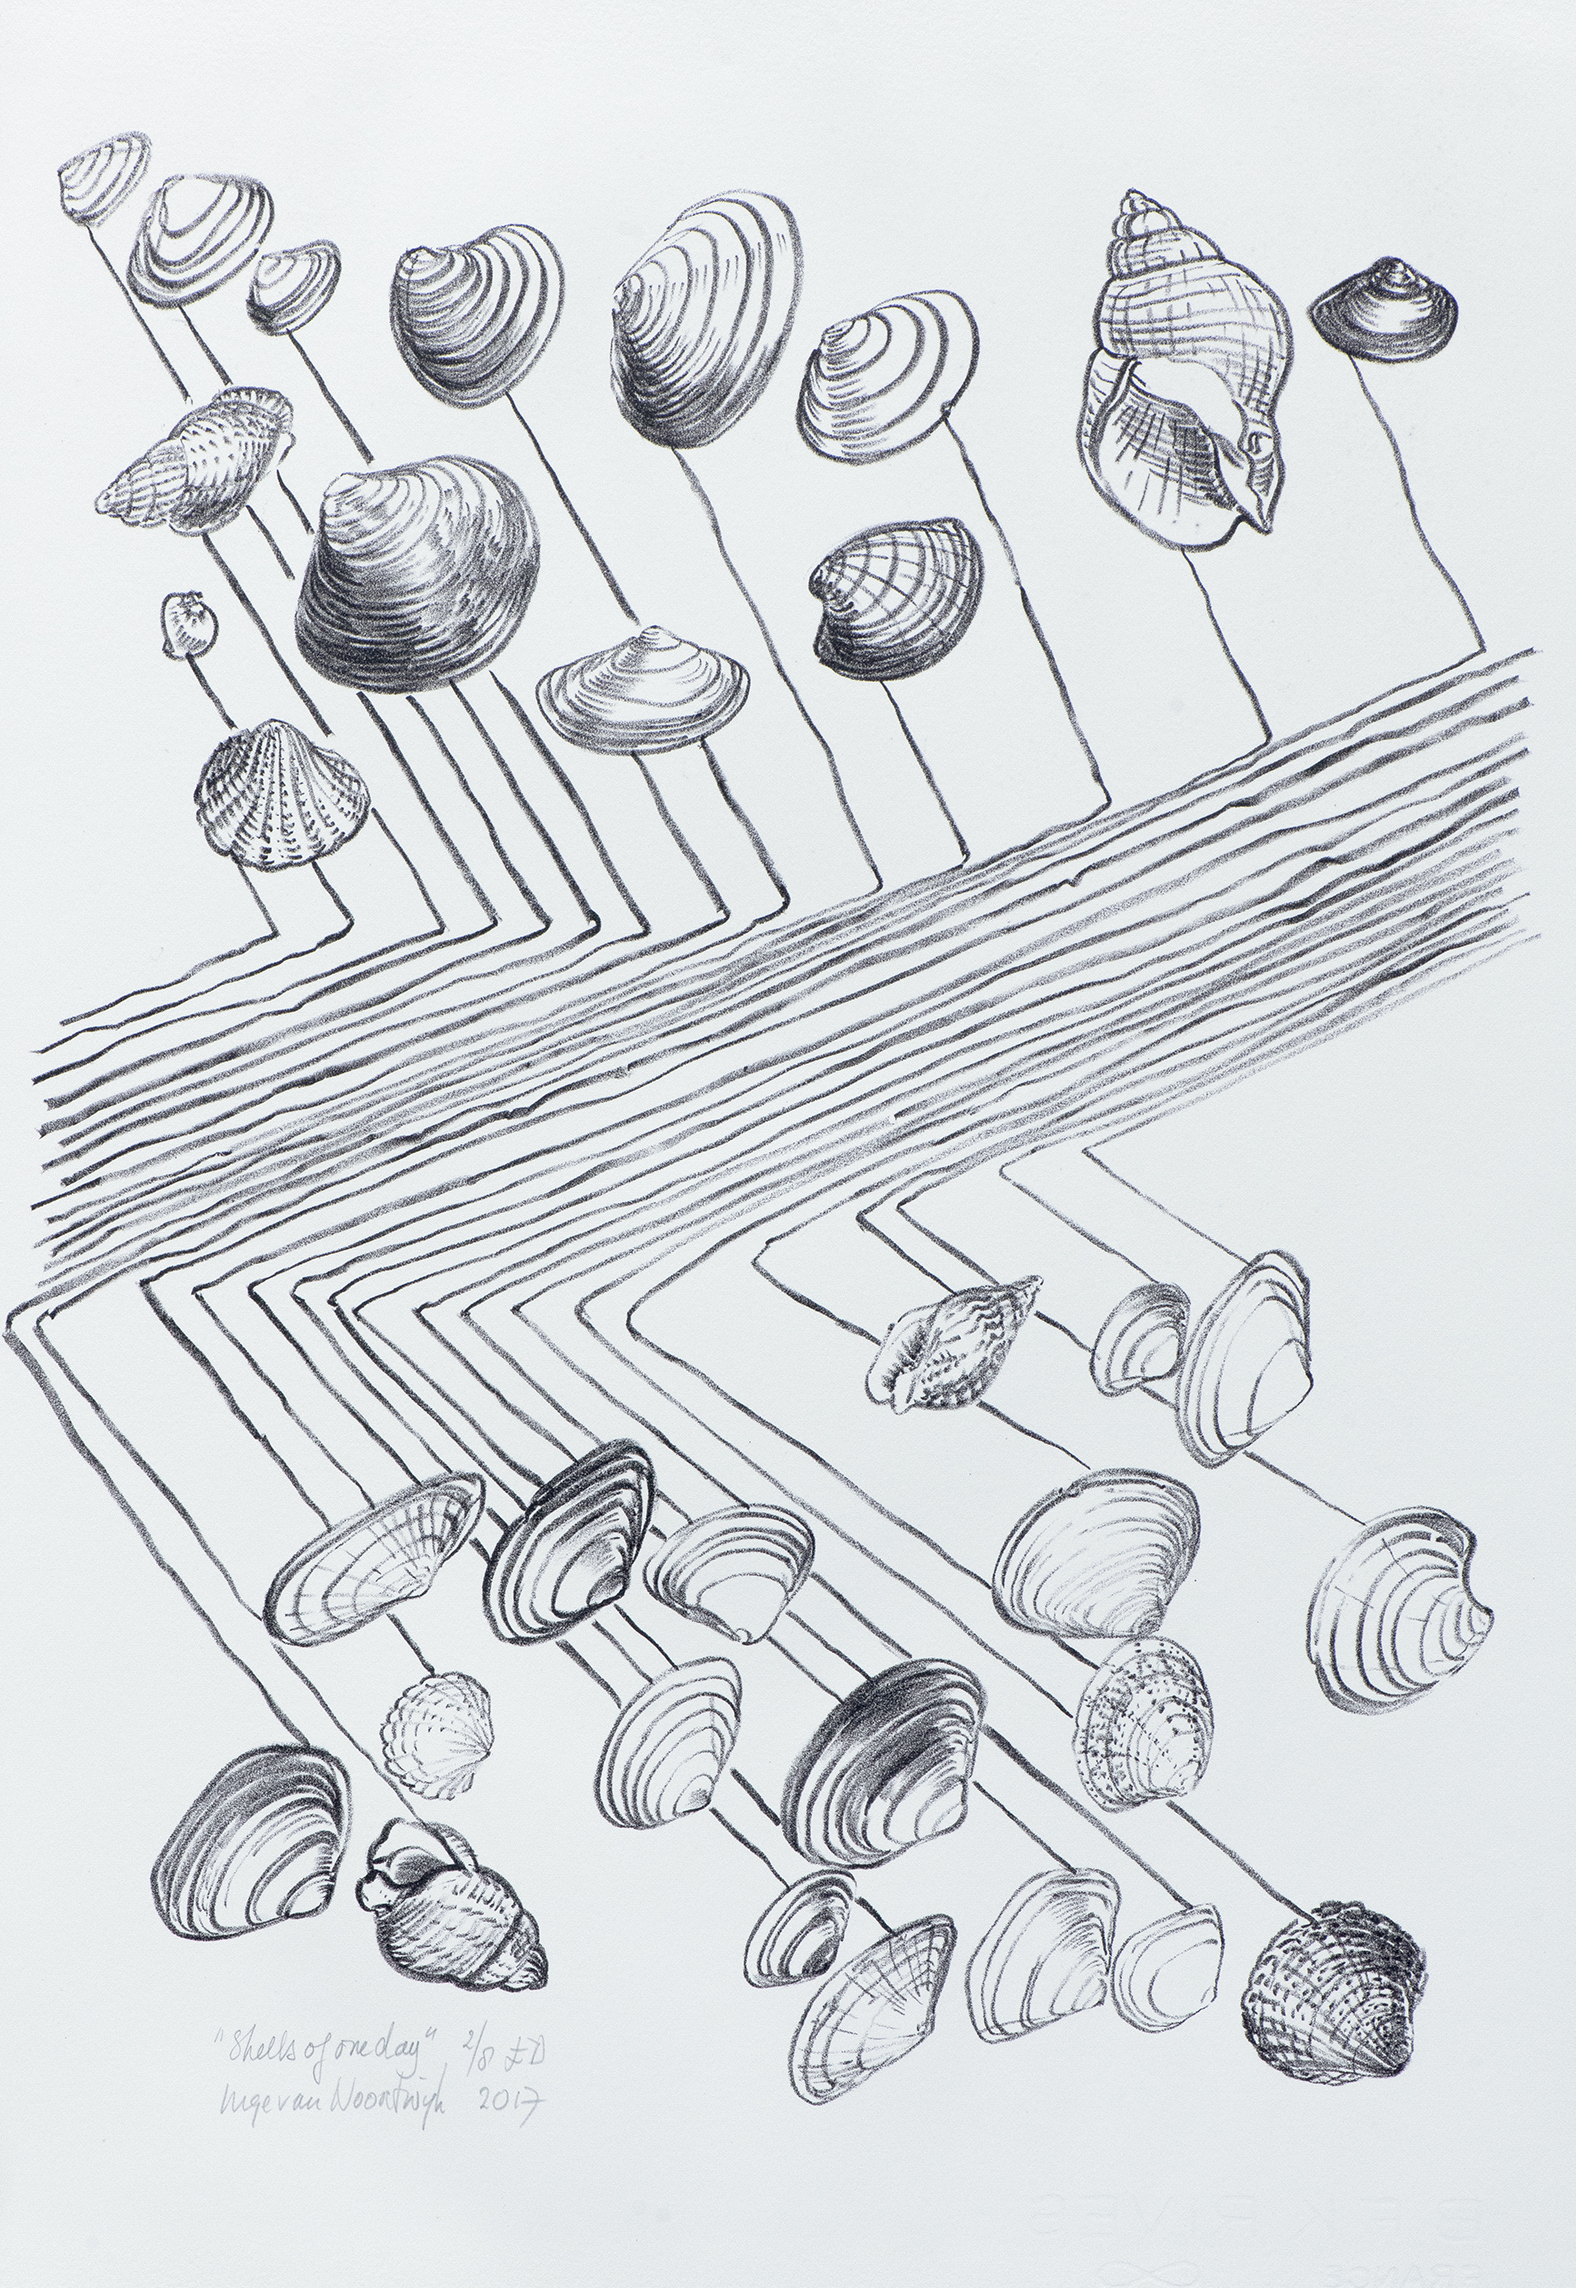 Shells of one day 2017 litho